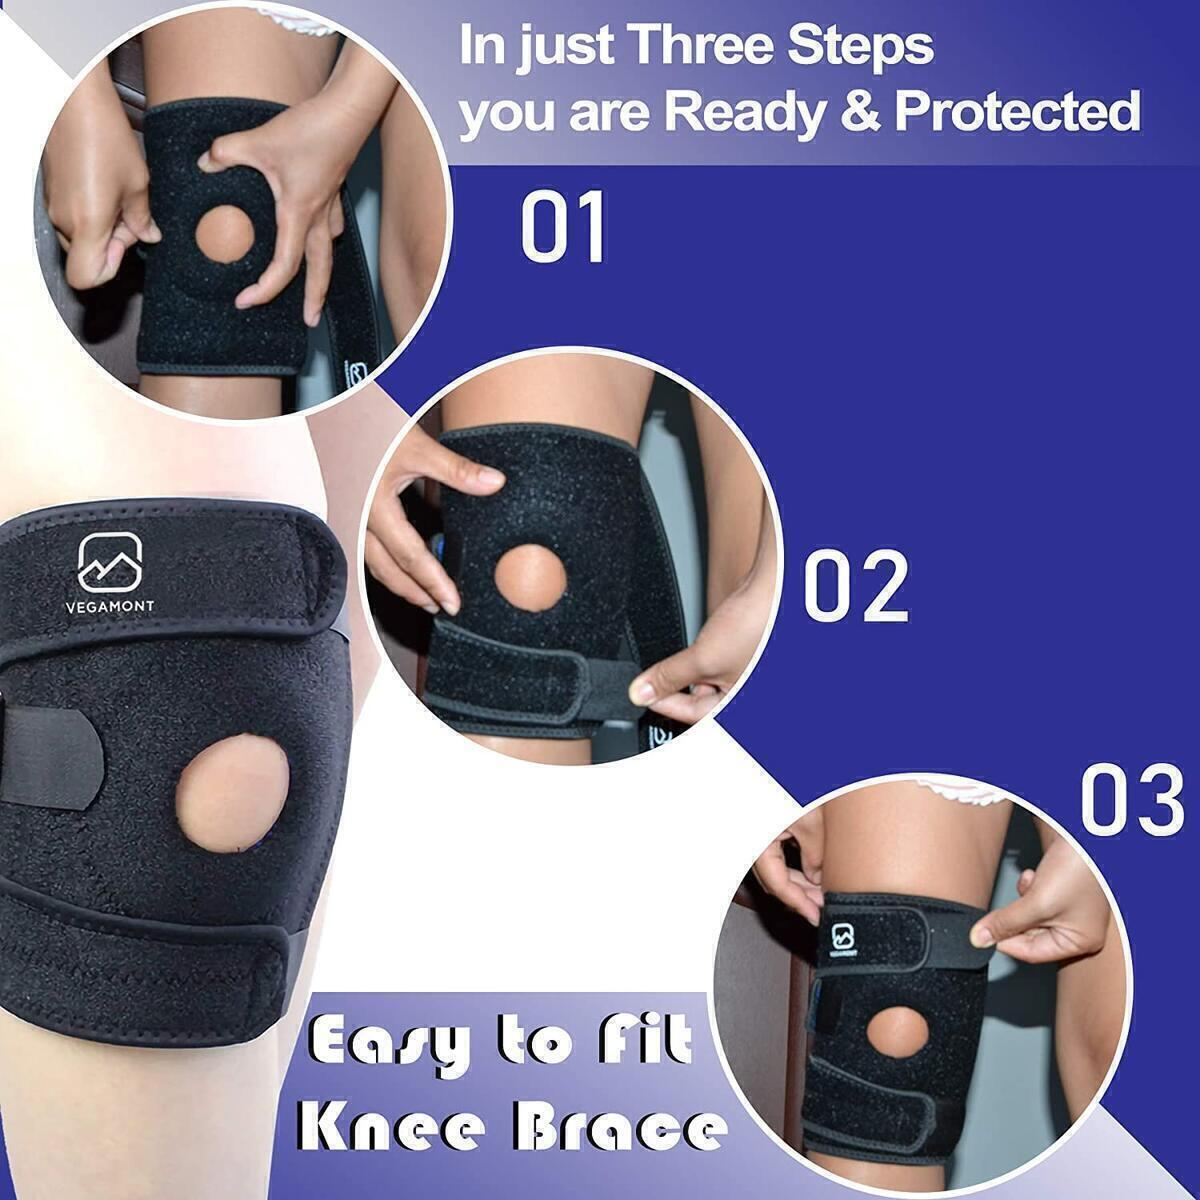 Knee Brace Support for Women and Men by VEGAMONT - Adjustable Open Patella Neoprene Strap - Reduce pain & Protect from Injury - Non Slip - Size 35cm - 40cm (13